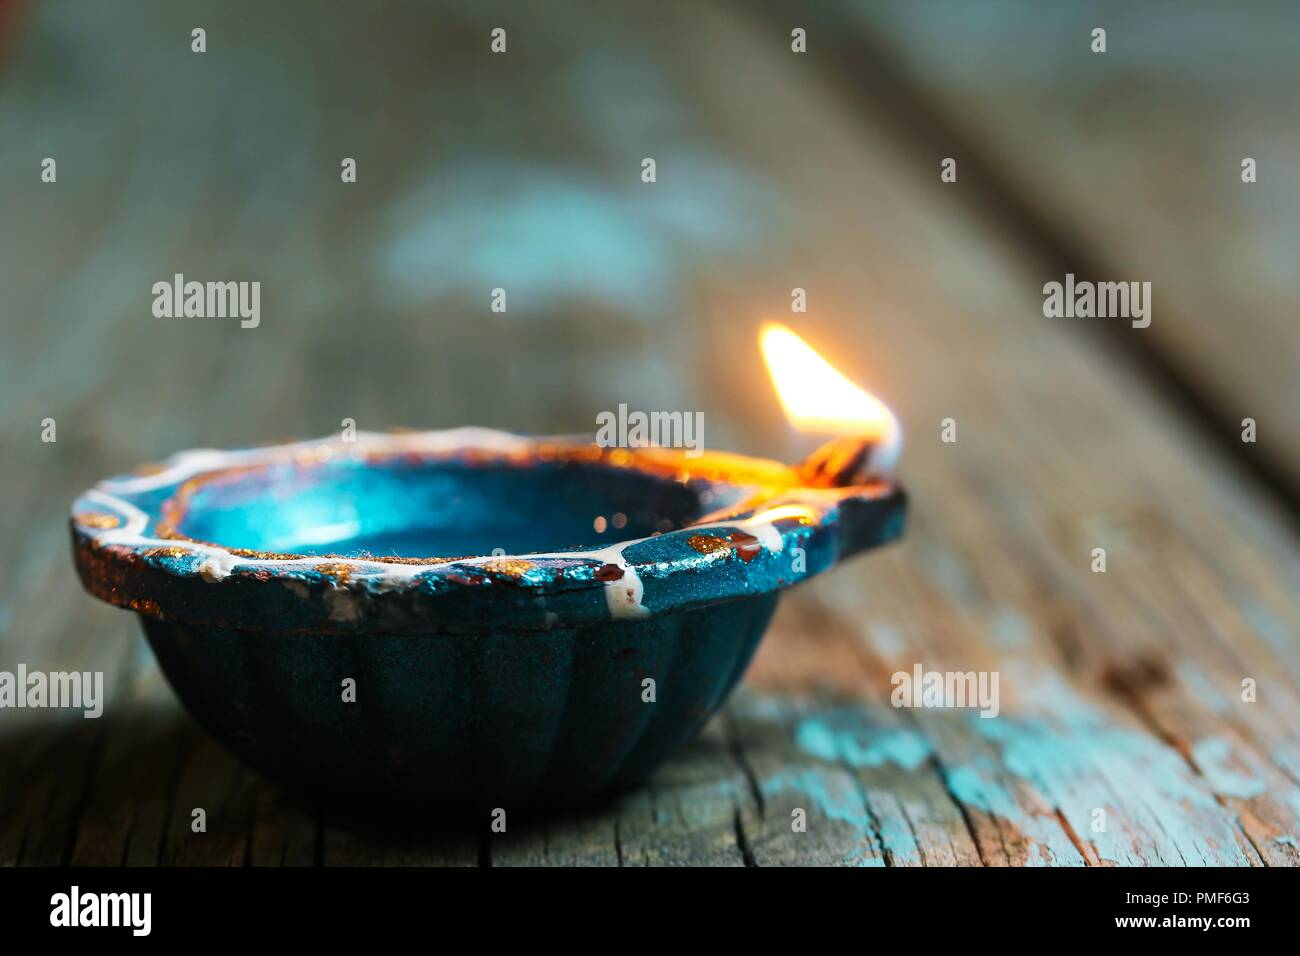 Happy Diwali - Colorful Clay Diya lit during Deepavali festival of lights, selective focus Stock Photo